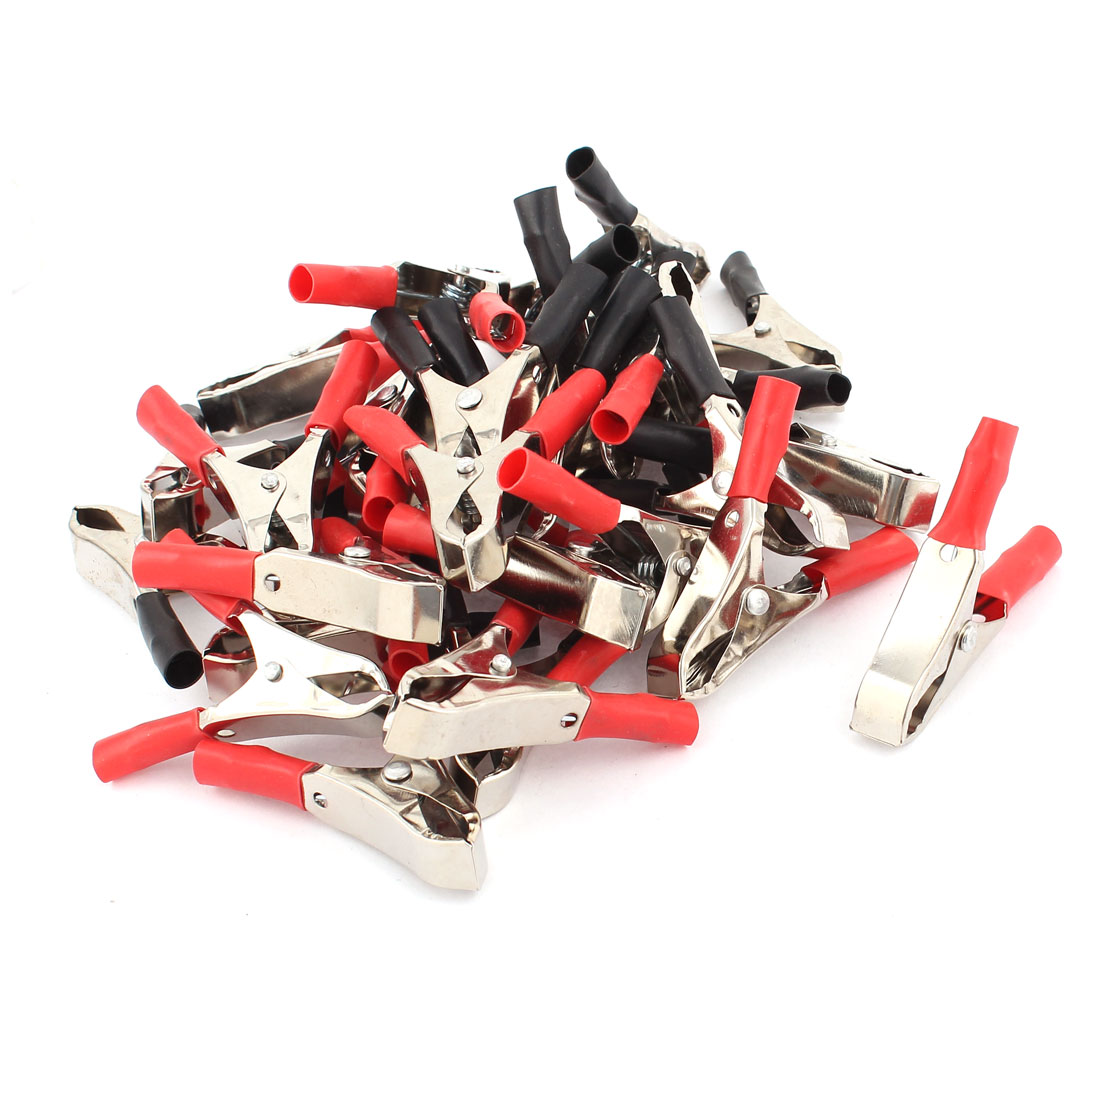 15 Pairs 30A Car Battery Alligator Clip Electrical Test Clamp Red Black